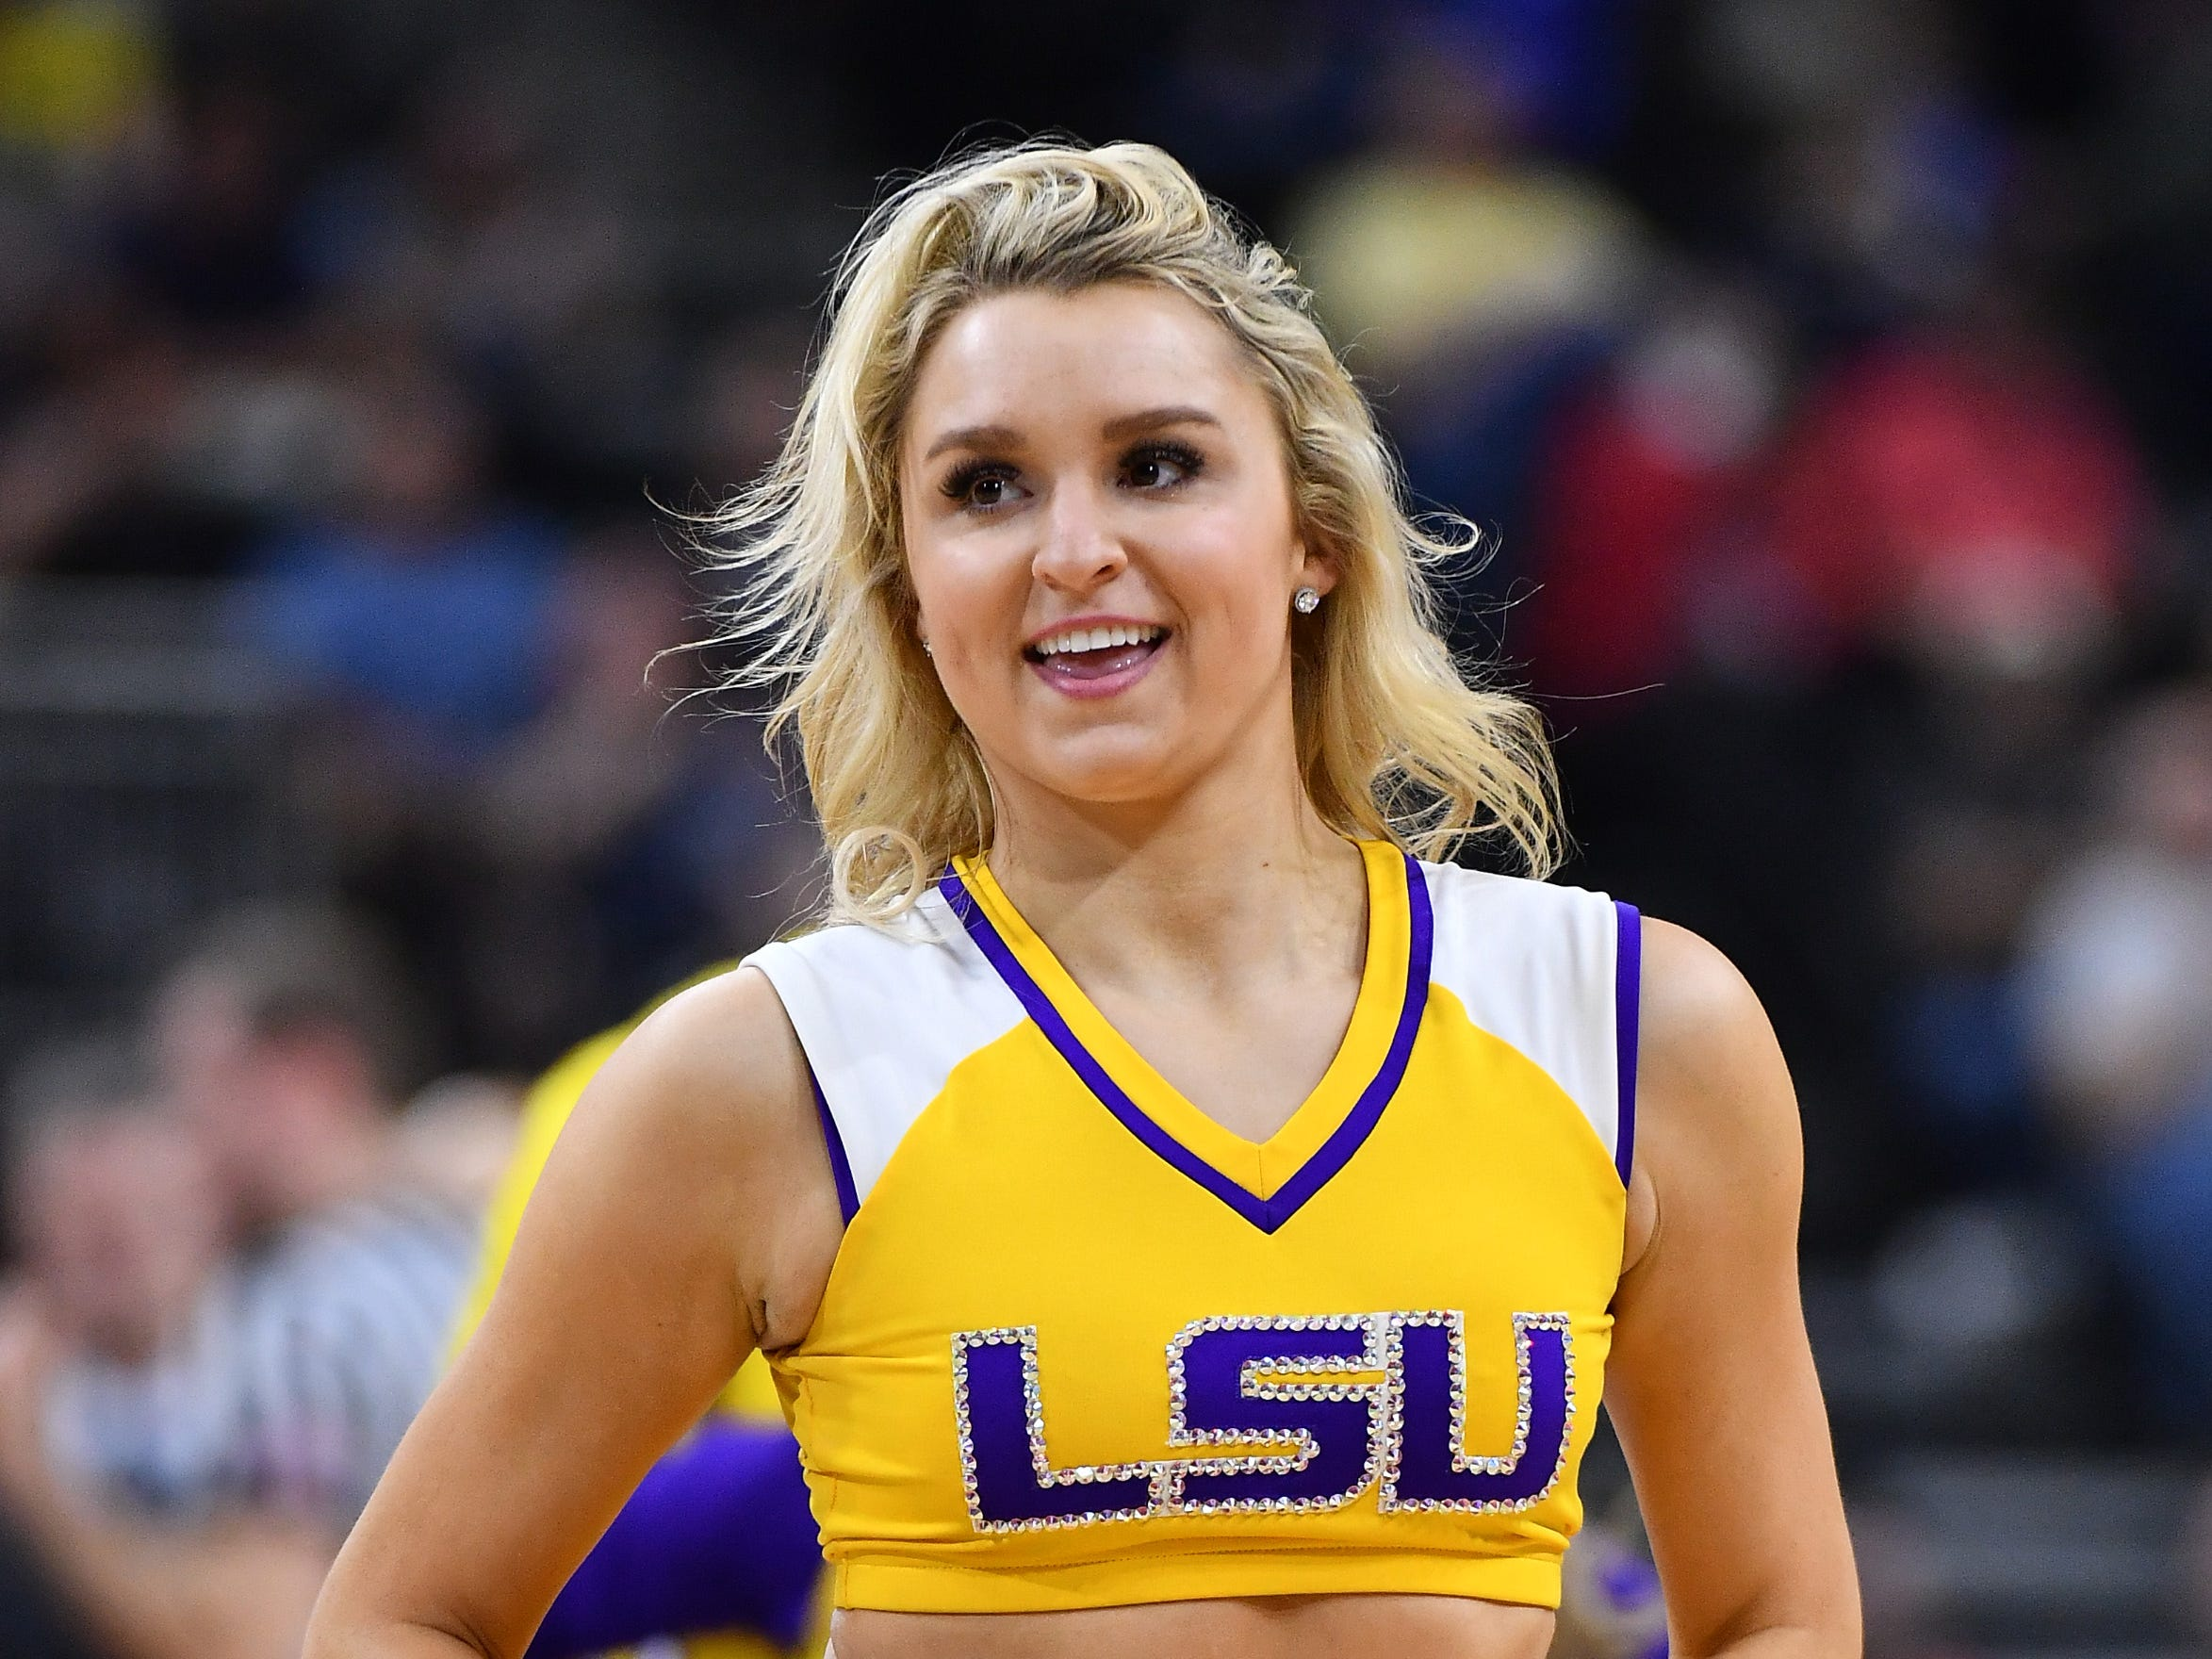 Mar 21, 2019; Jacksonville, FL, USA; The LSU Tigers cheerleaders perform during the first half against the Yale Bulldogs in the first round of the 2019 NCAA Tournament at Jacksonville Veterans Memorial Arena. Mandatory Credit: John David Mercer-USA TODAY Sports